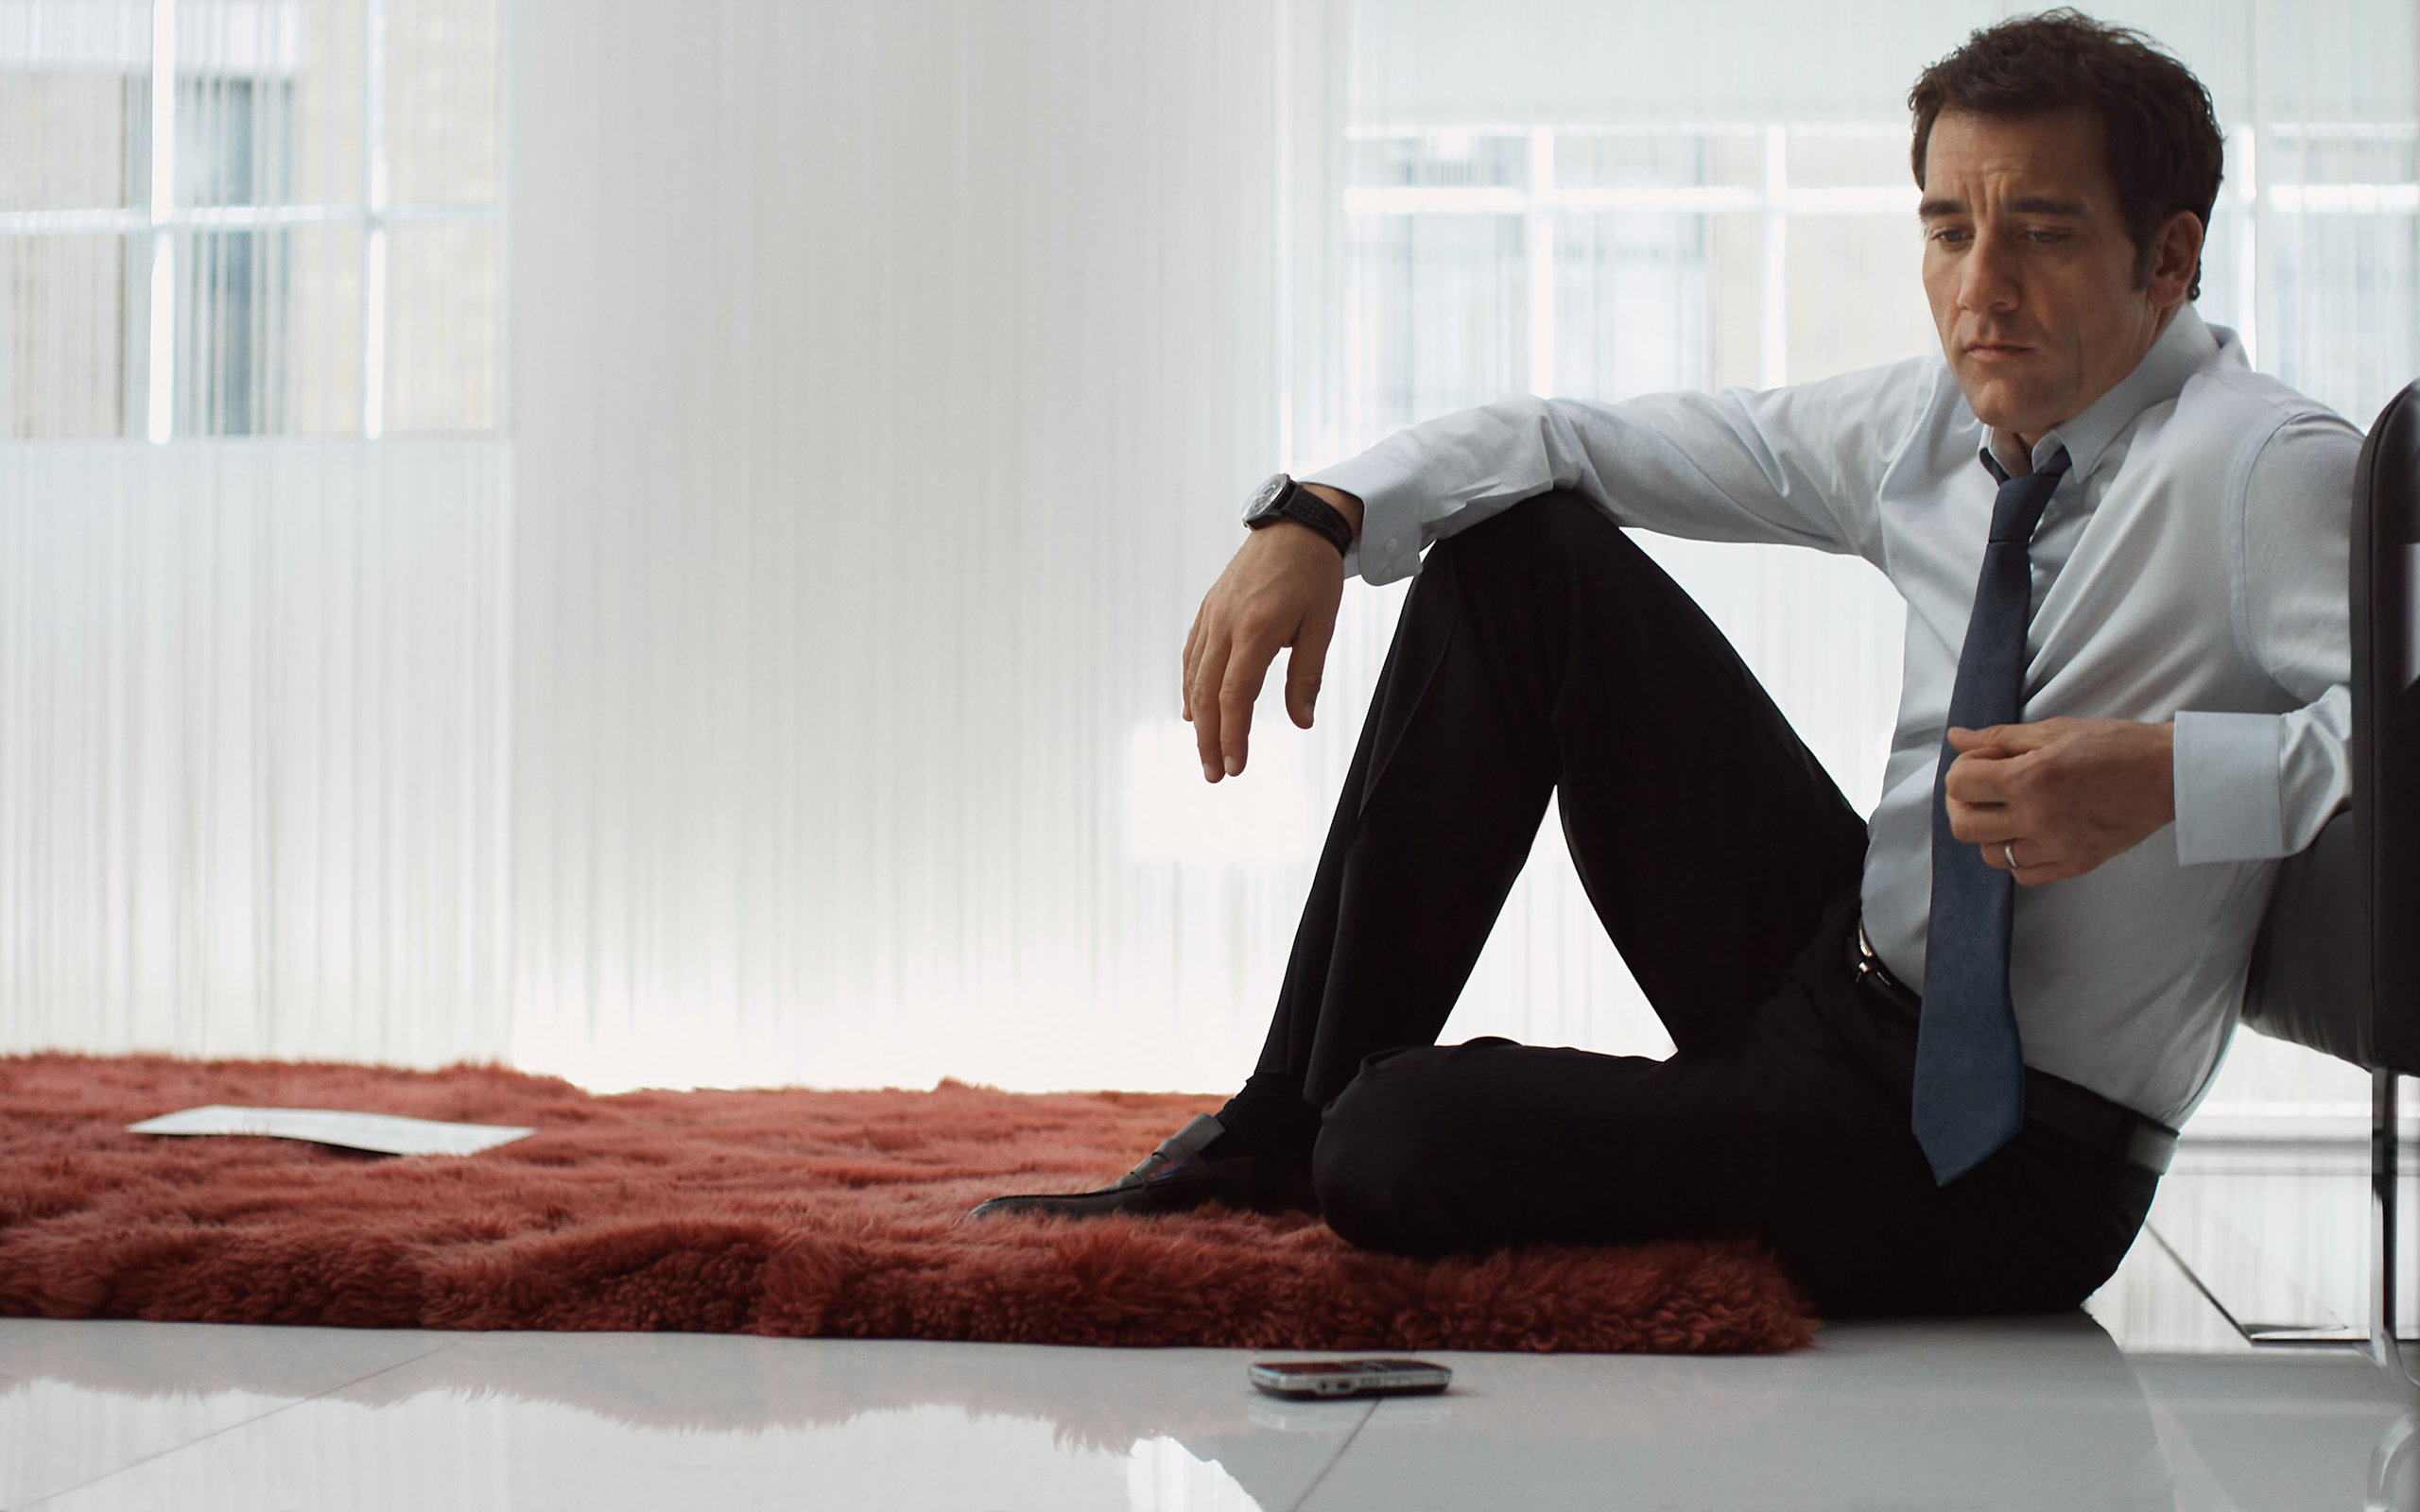 2560x1600 - Clive Owen  Wallpapers 19